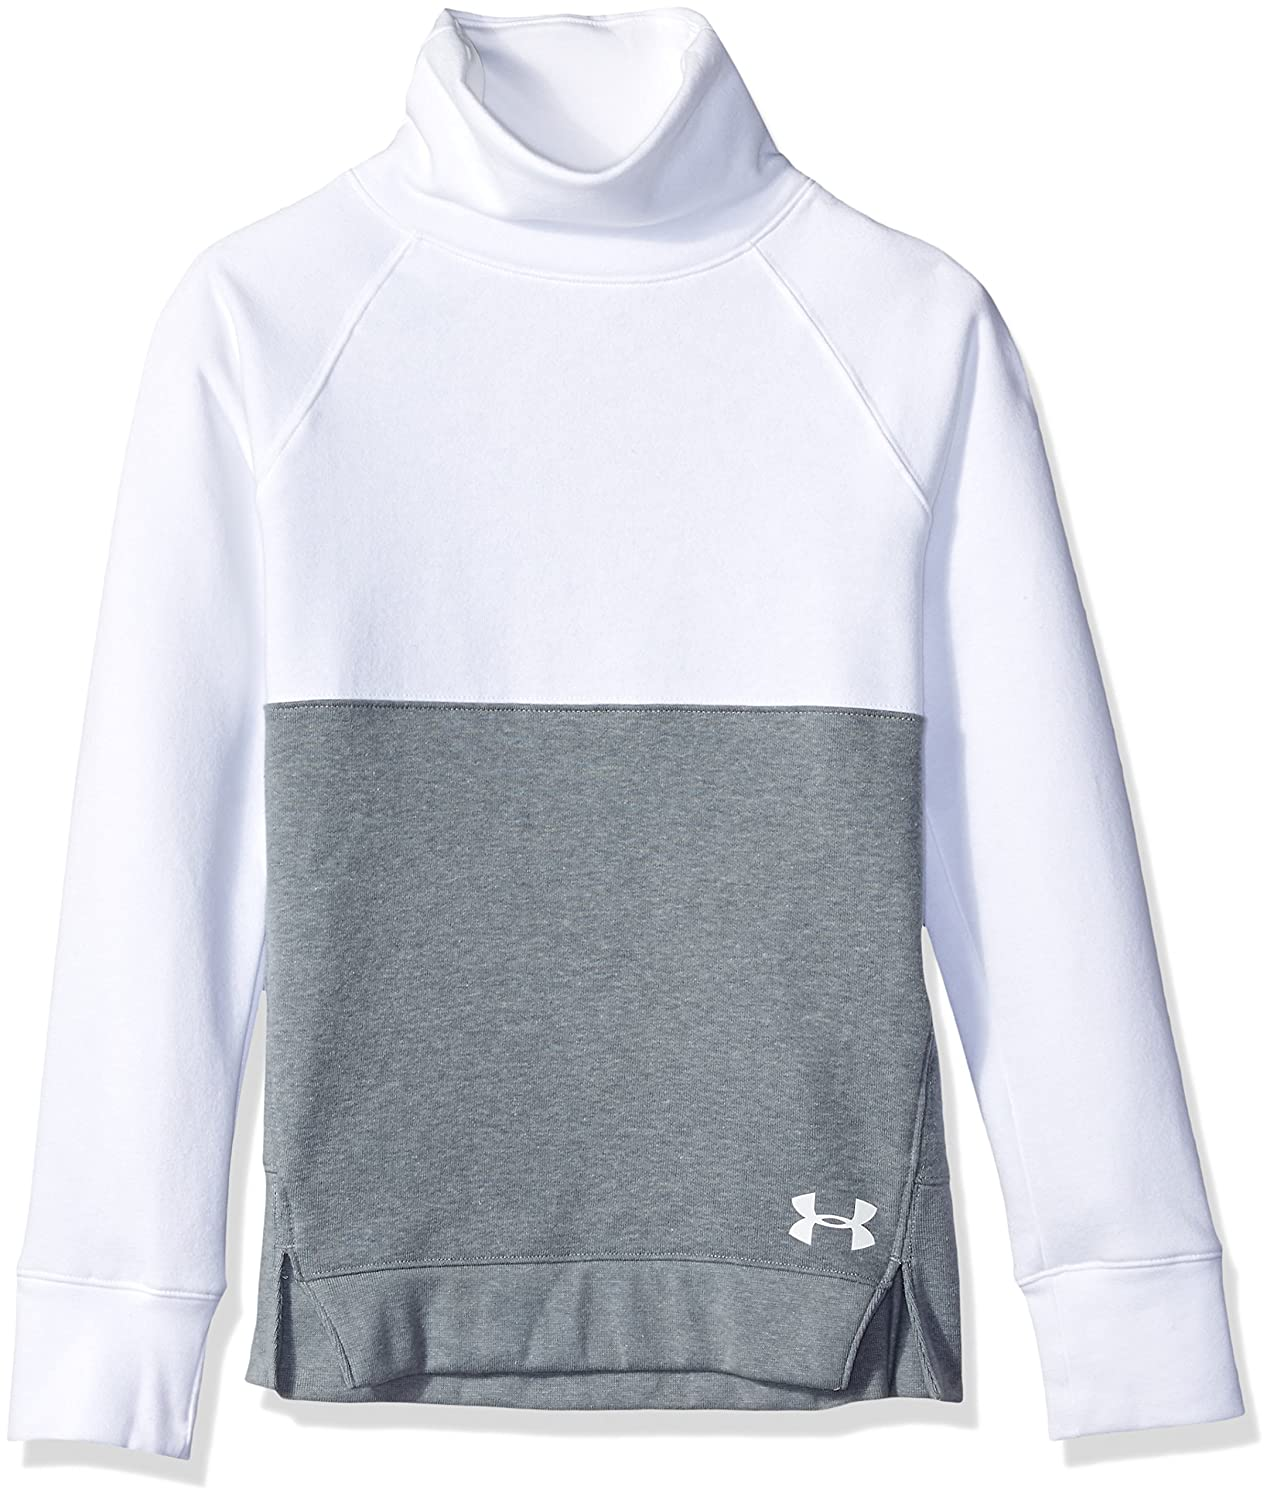 Under Armour Girls Rival Slouchy Crew Under Armour Apparel 1317844-P